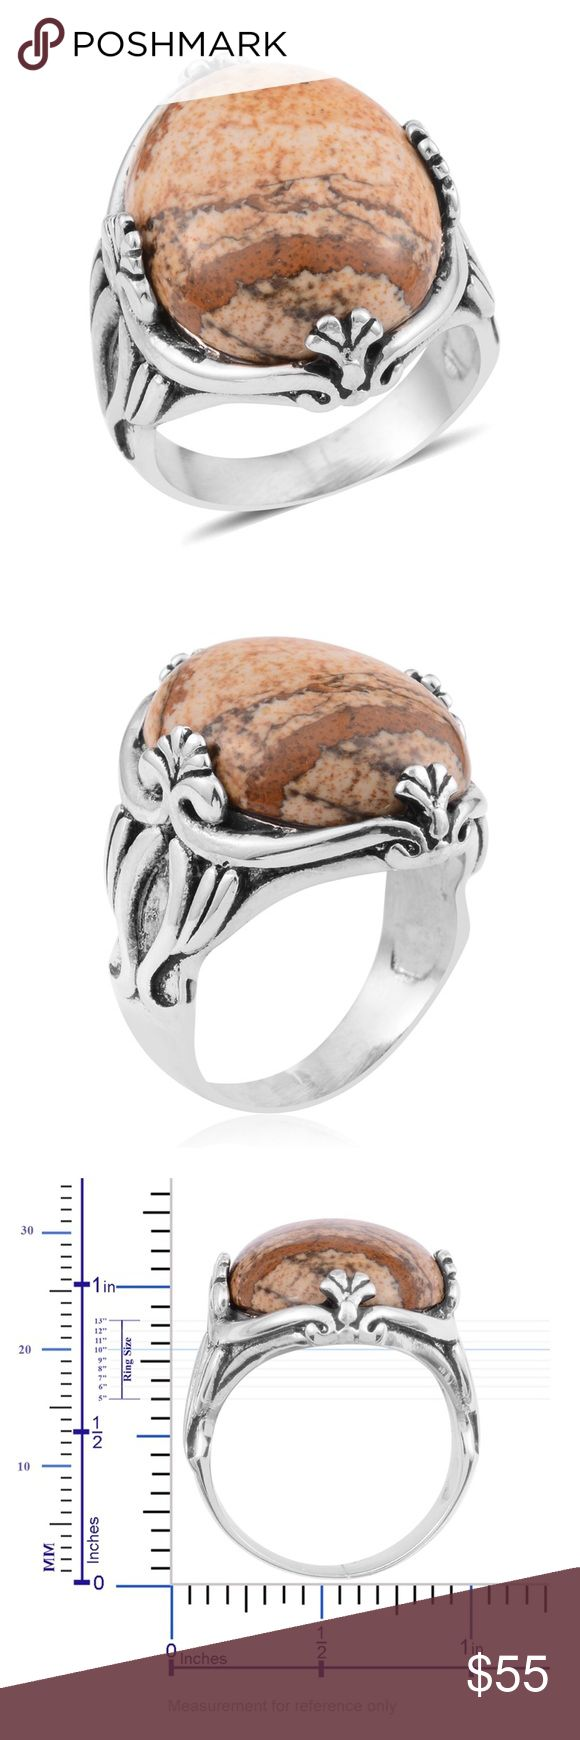 Picture Jasper 925 Stainless Steel Ring Size 8 Picture Jasper Black Oxidized Stainless Steel Ring (Size 8.0) TGW 30.00 cts. 2189 Finish Black Oxidised Product Weight (grams) 4.080 Total Stone Weight (Carat) 30 Gemstone 1 Picture Jasper Fancy Free Fancy Gemstone Weight 1 30 Metal 613 Stainless Steel Western Wear Statement Ring Boho Gypsy Semi precious stone Healing Stones Native American Festival Southwest artisan Jewelry Rings